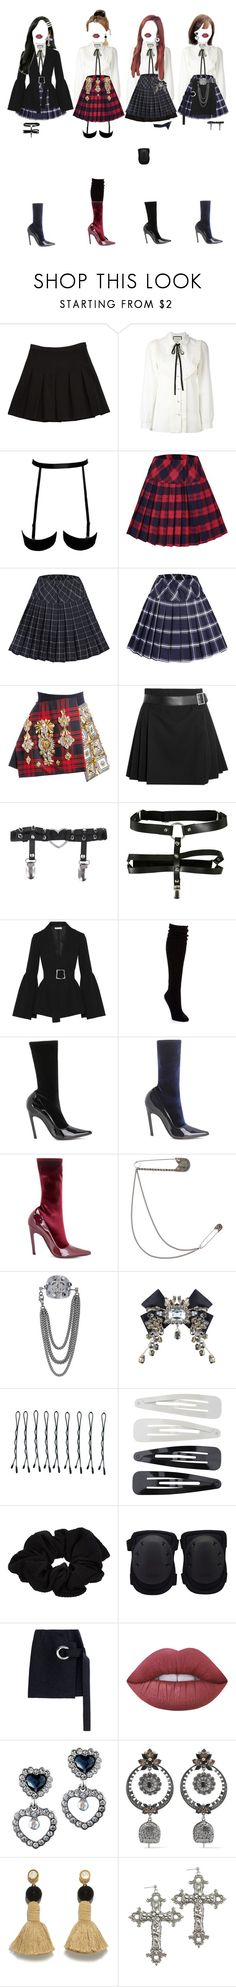 """""""G-1 _ AIMING AT YOU"""" by xxeucliffexx ❤ liked on Polyvore featuring Diane Von Furstenberg, Gucci, FAUSTO PUGLISI, Alexander McQueen, Hot Topic, Rejina Pyo, Hue, Balenciaga, Dolce&Gabbana and BOBBY"""